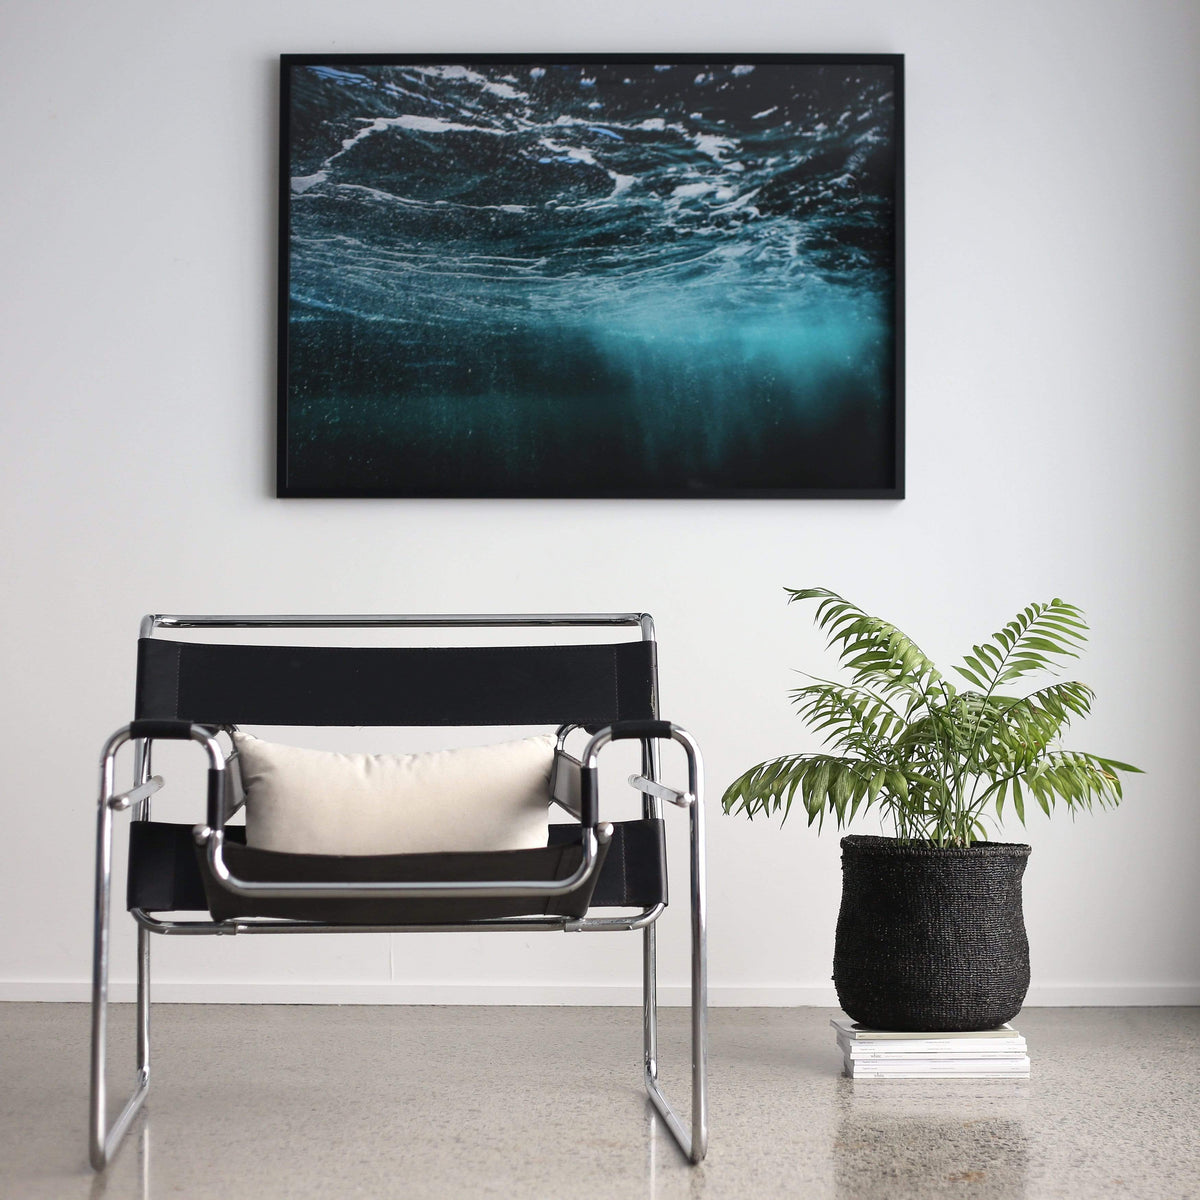 Depths Photographic Art Print by Jenna Smith